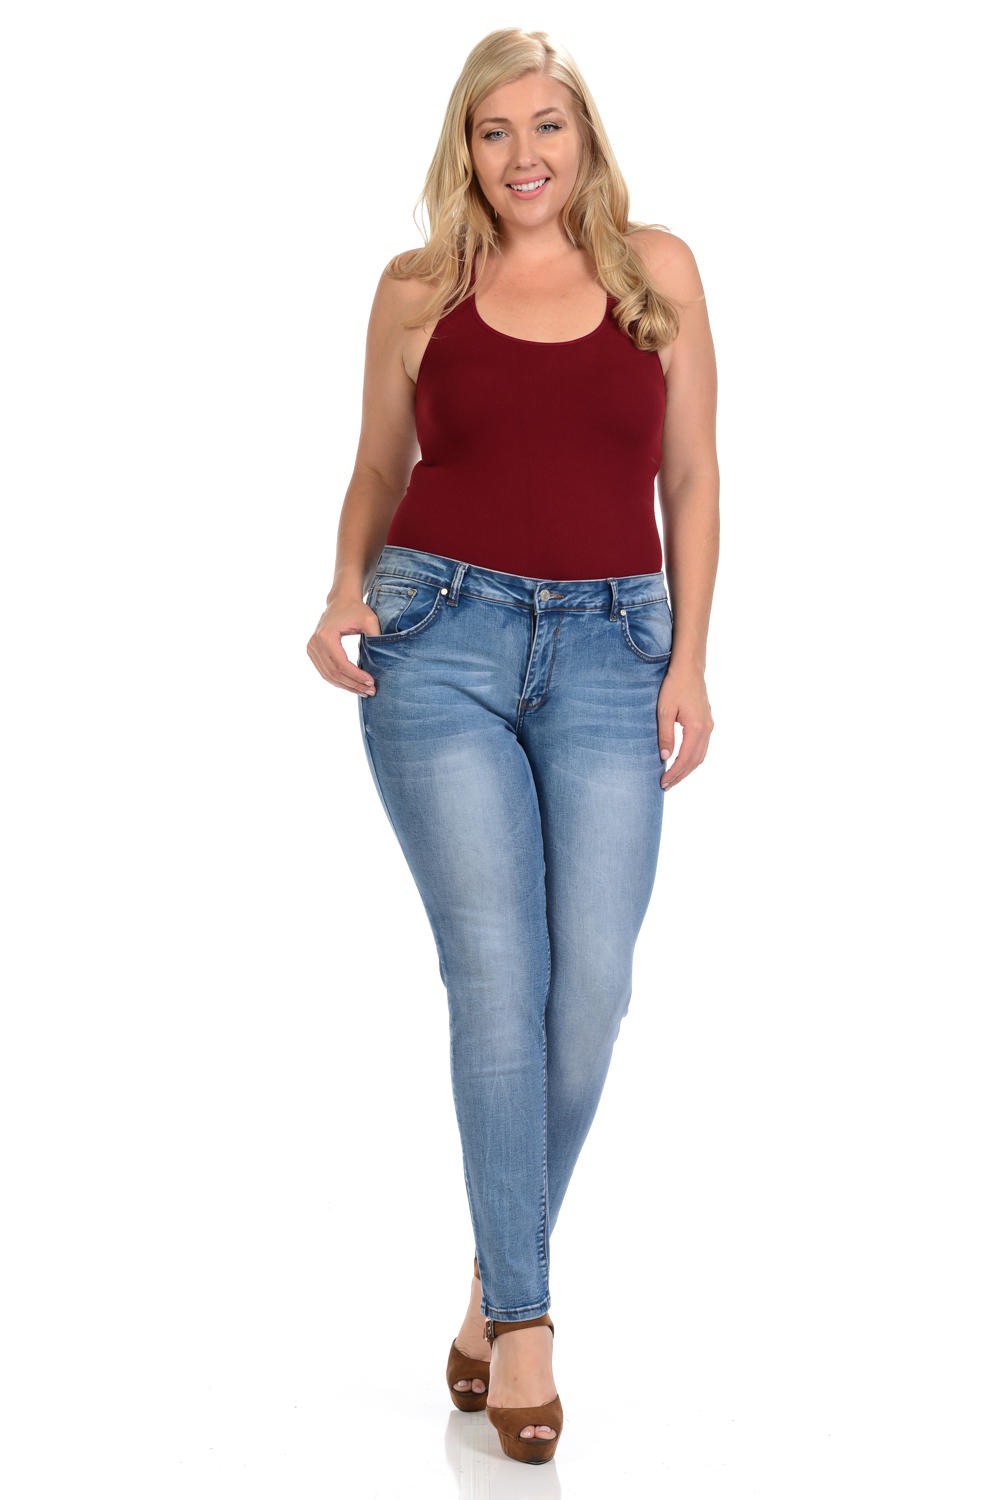 Sweet Look Premium Edition Women's Jeans - Plus Size - High Waist - Skinny - Style A283